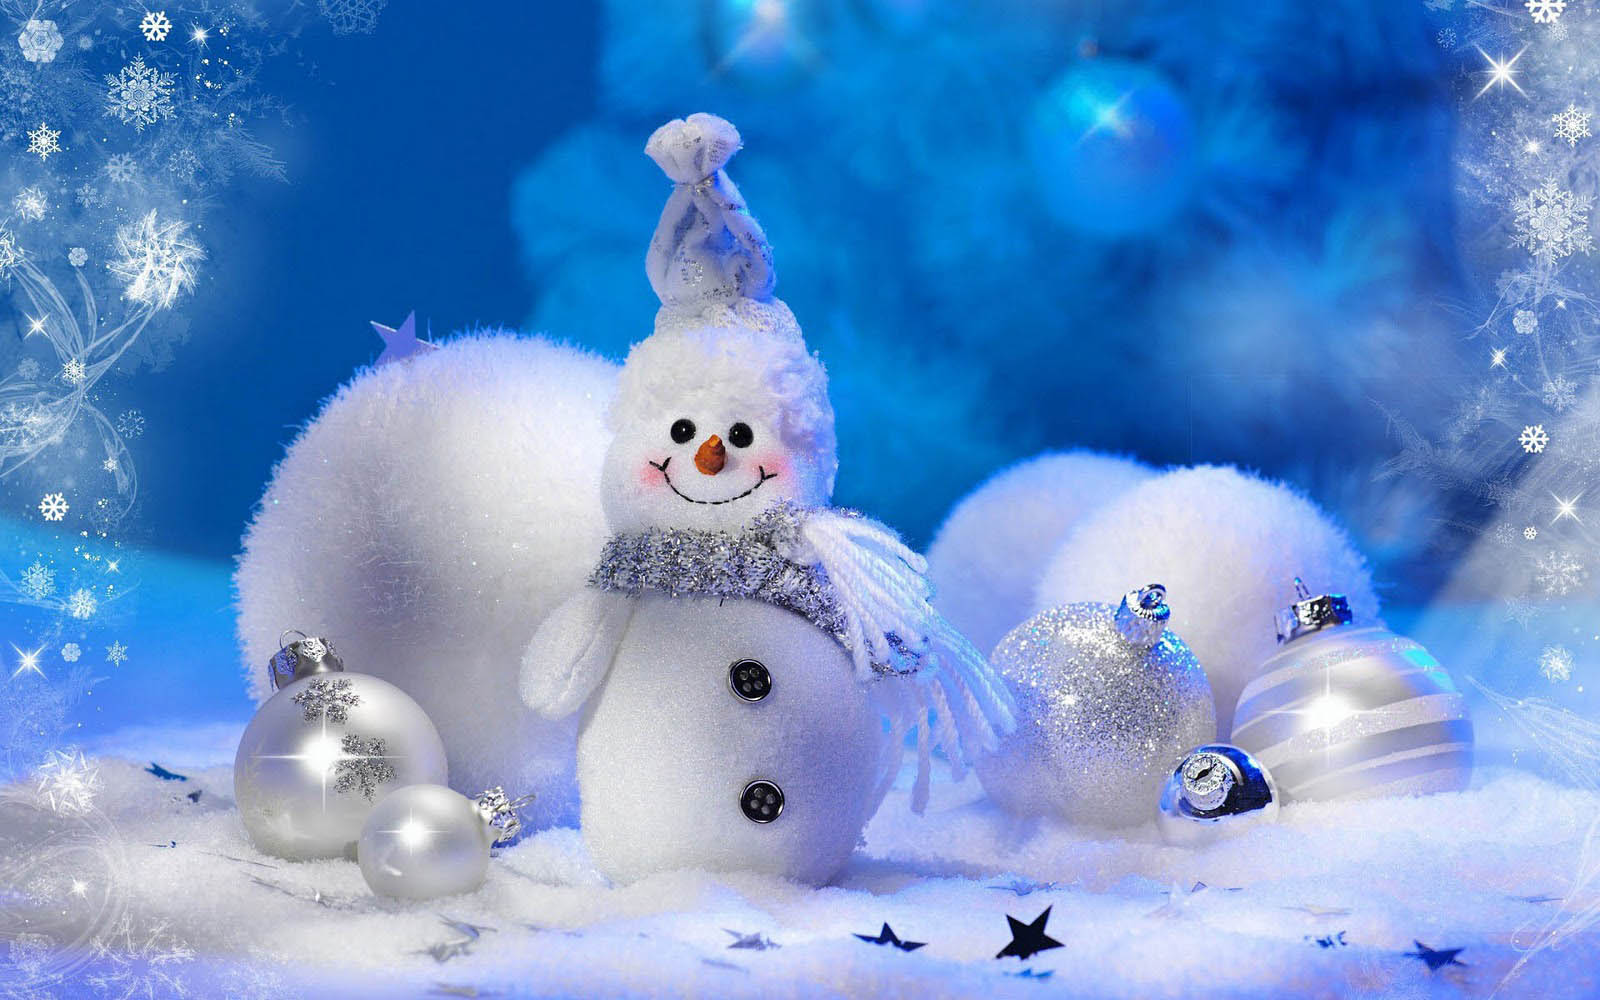 Tag Snowman Wallpapers Backgrounds Photos Picturesand Images for 1600x1000